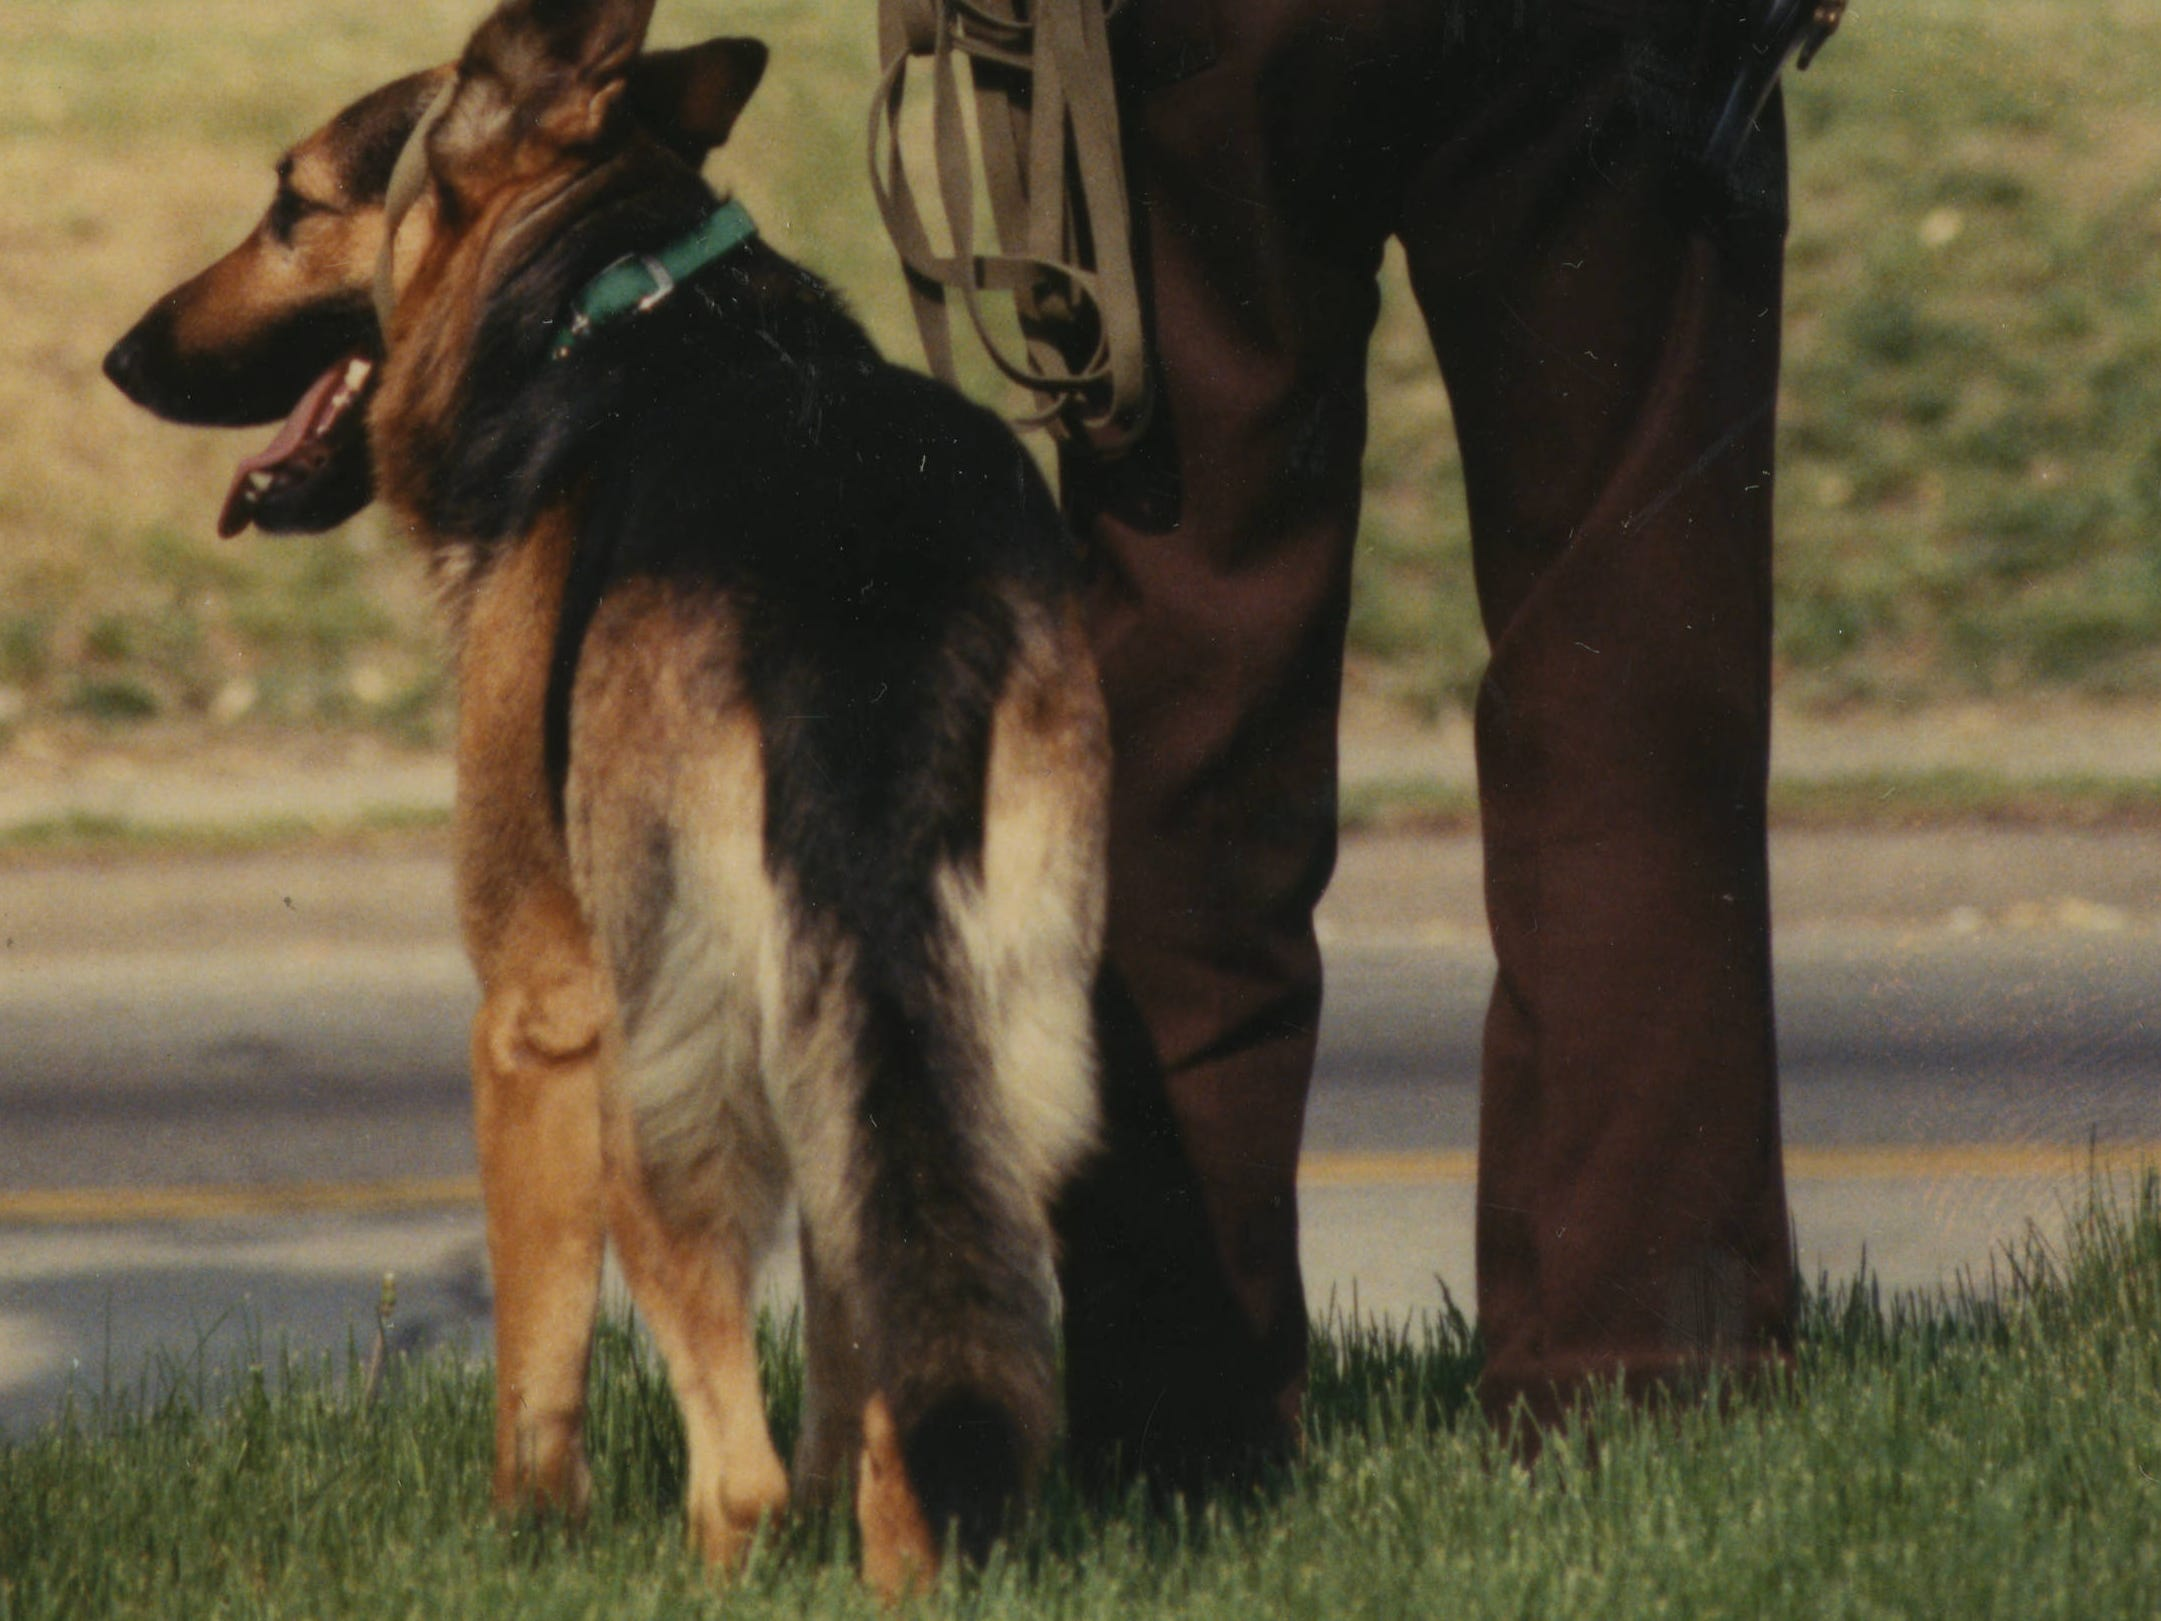 Charlie Miller looking down Grant as his canine hunt dog searched for escaped prisoner Larry Hankins. Larry Wayne Hankins was arrested for robbing the Stone County National bank at Cape Fair on April 17, 1989.